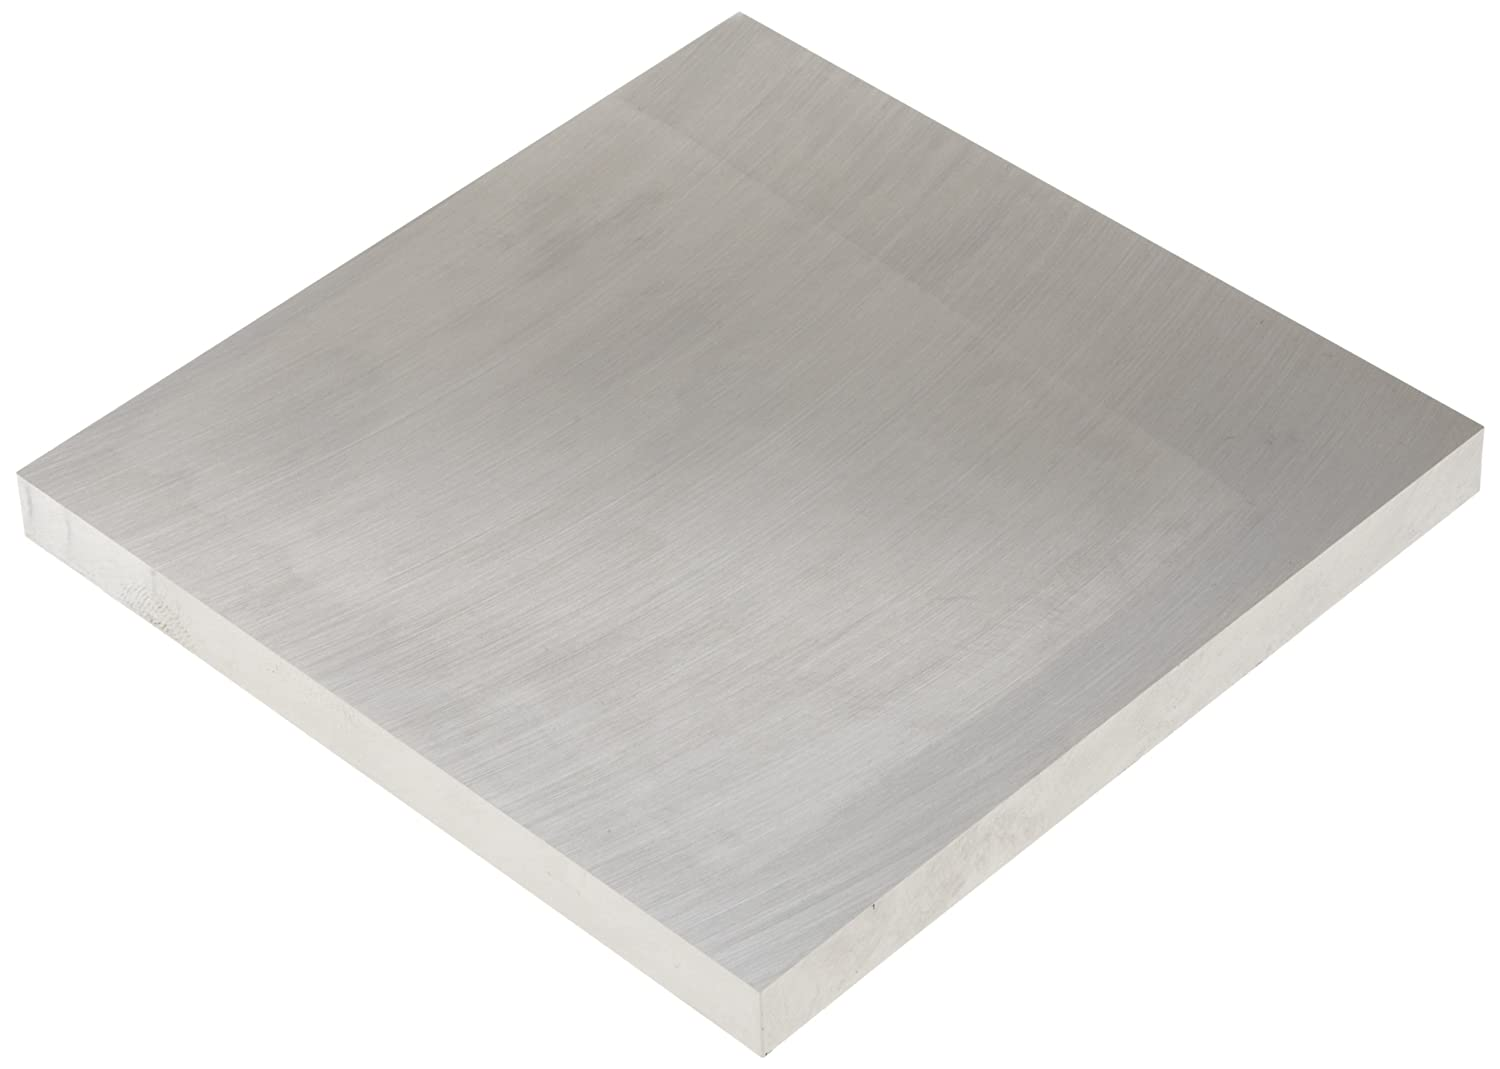 6061 Aluminum Sheet, Precision Ground, T651 Temper, Precision Tolerance, ASTM B209, 0.5' Thickness, 12' Width, 12' Length 0.5 Thickness 12 Width 12 Length